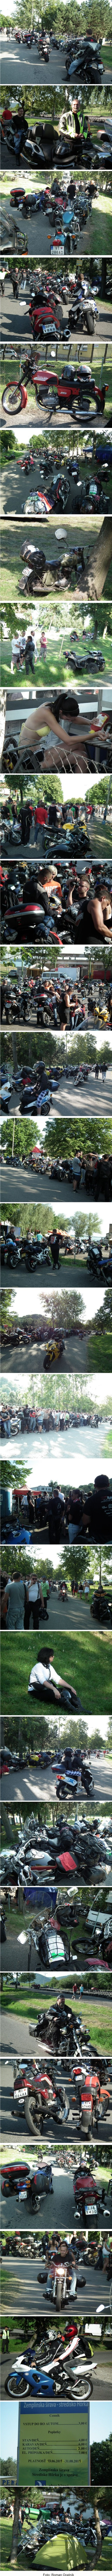 MOTOZRAZ ZEMPLNSKA RAVA 2011 FOTO GALRIA